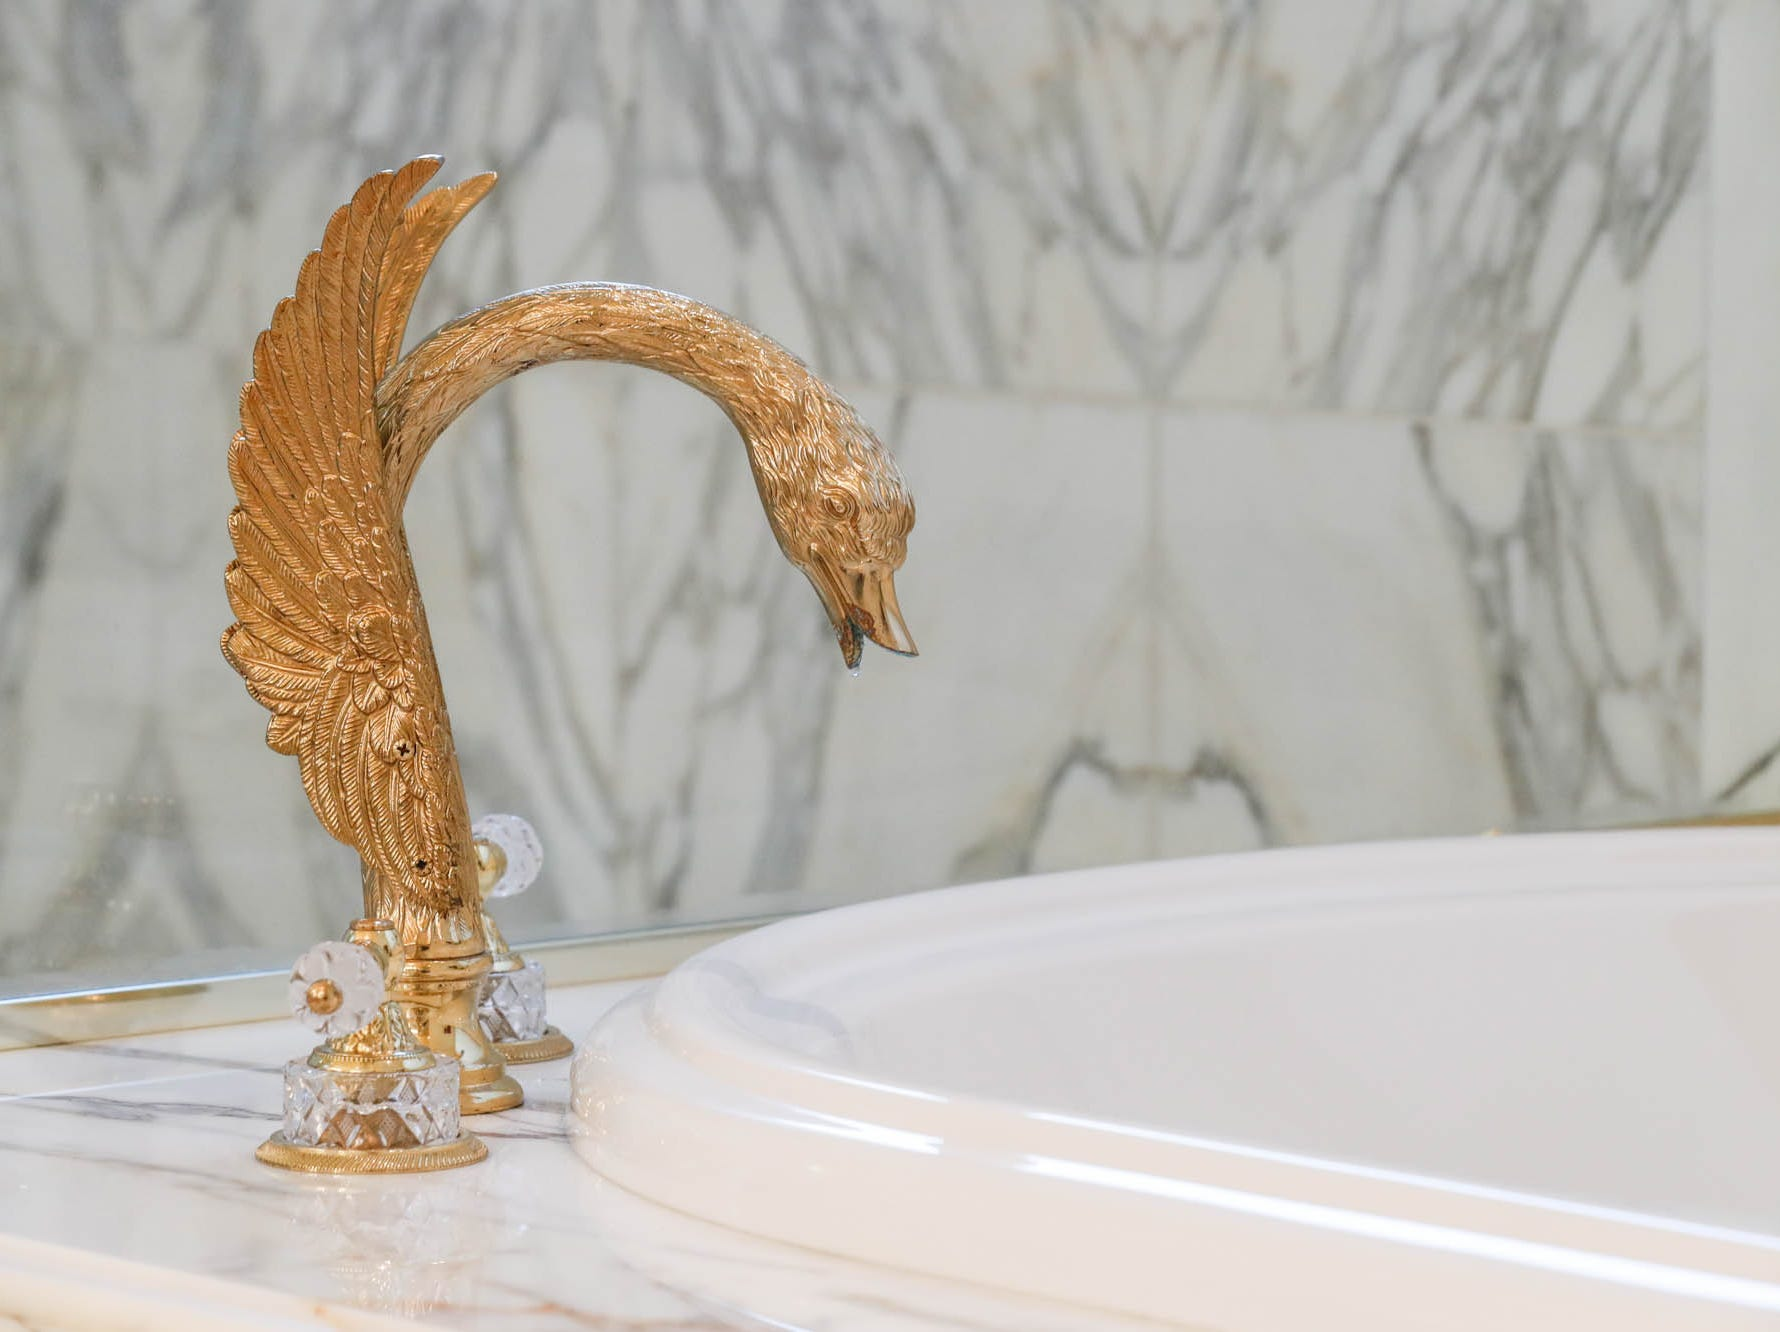 A first-floor master bath, one of two in the home, features a golden swan bath tap, a whirlpool tub, and all the storage space you could ask for, at a Greenwood home up for sale at 1216 Stone Ridge Court, Greenwood, Ind. on Wednesday, Jan. 30, 2019. The home features 8,234 square feet, four bedrooms, two master suites, a 10 car garage, and an exercise room.